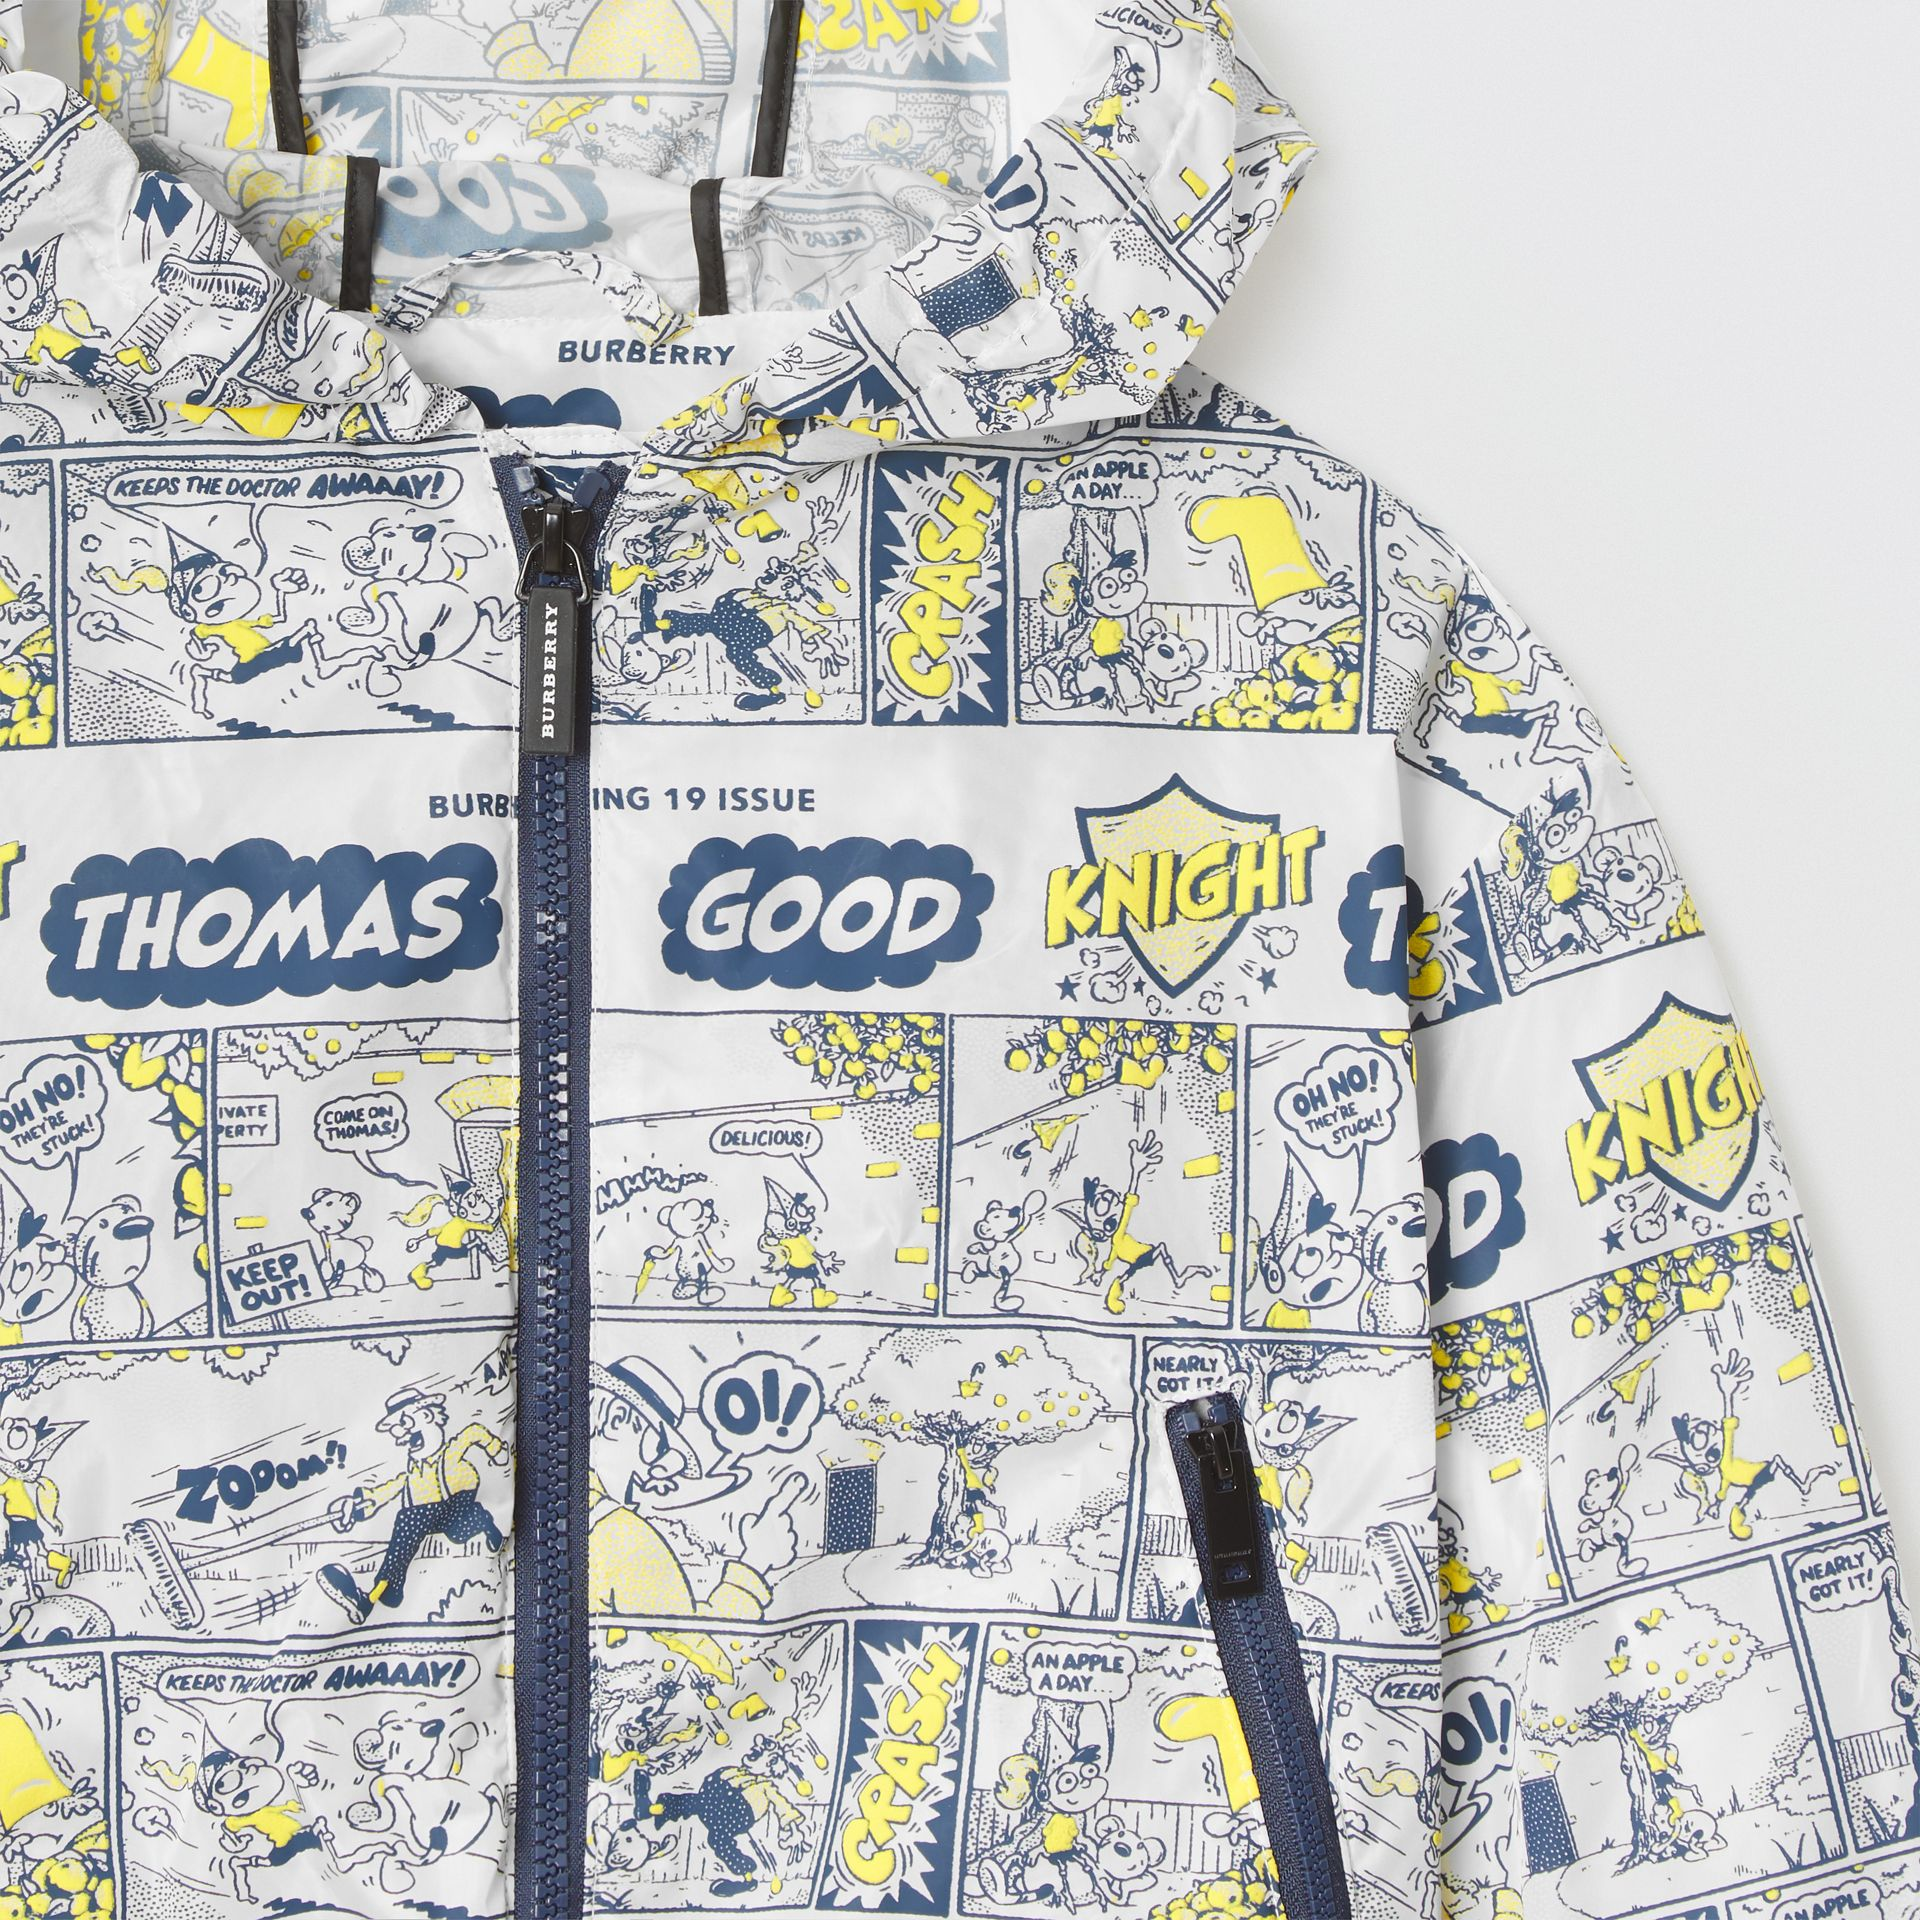 Comic Strip Print Lightweight Hooded Jacket in Citron | Burberry - gallery image 3